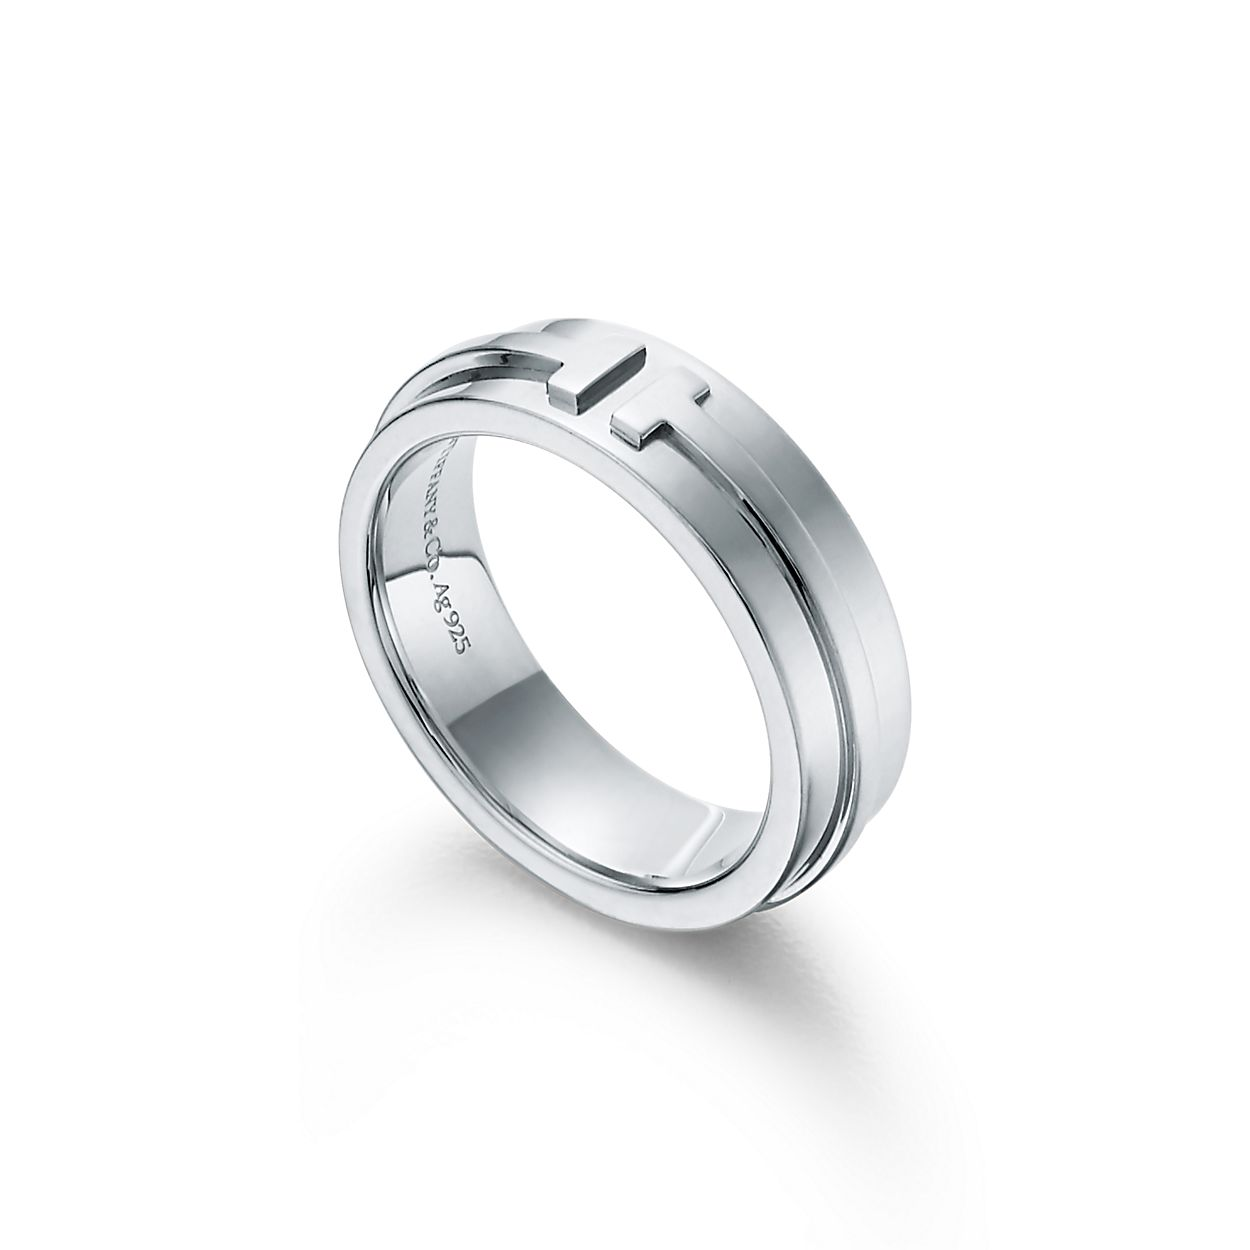 Tiffany T Wide Ring In Sterling Silver 5 9 Mm Wide Tiffany Co